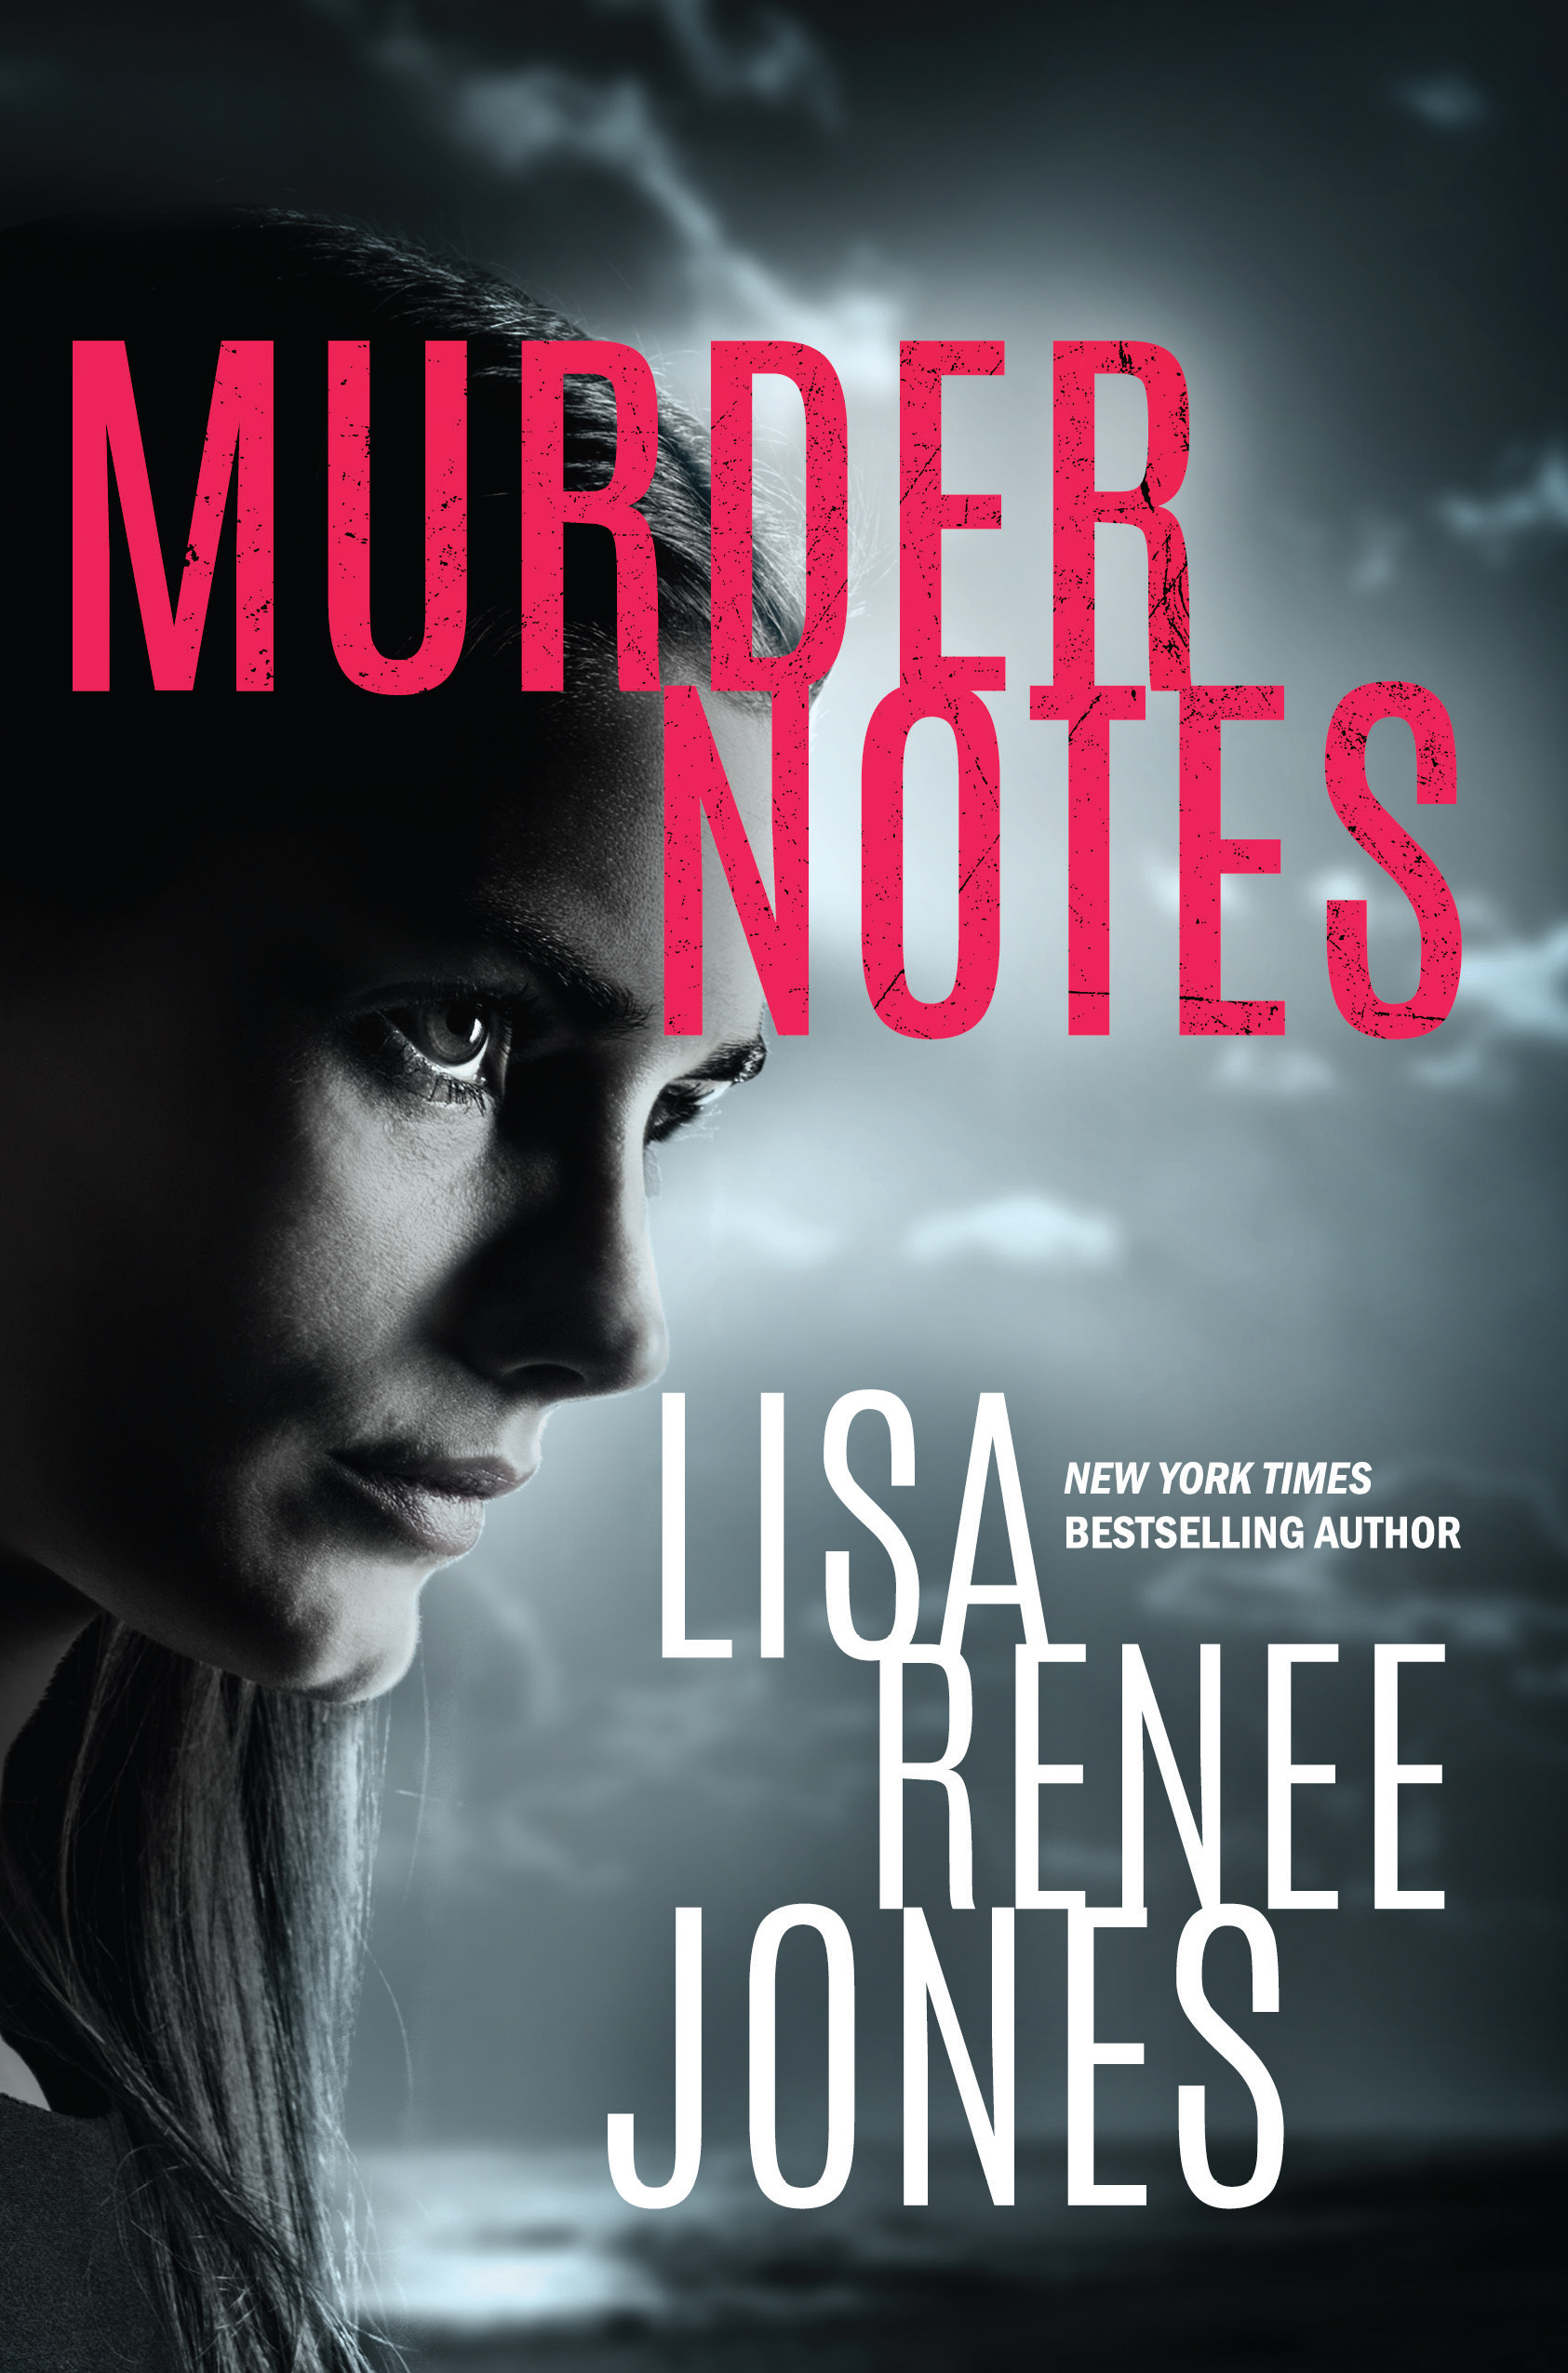 REVIEW: Murder Notes by Lisa Renee Jones